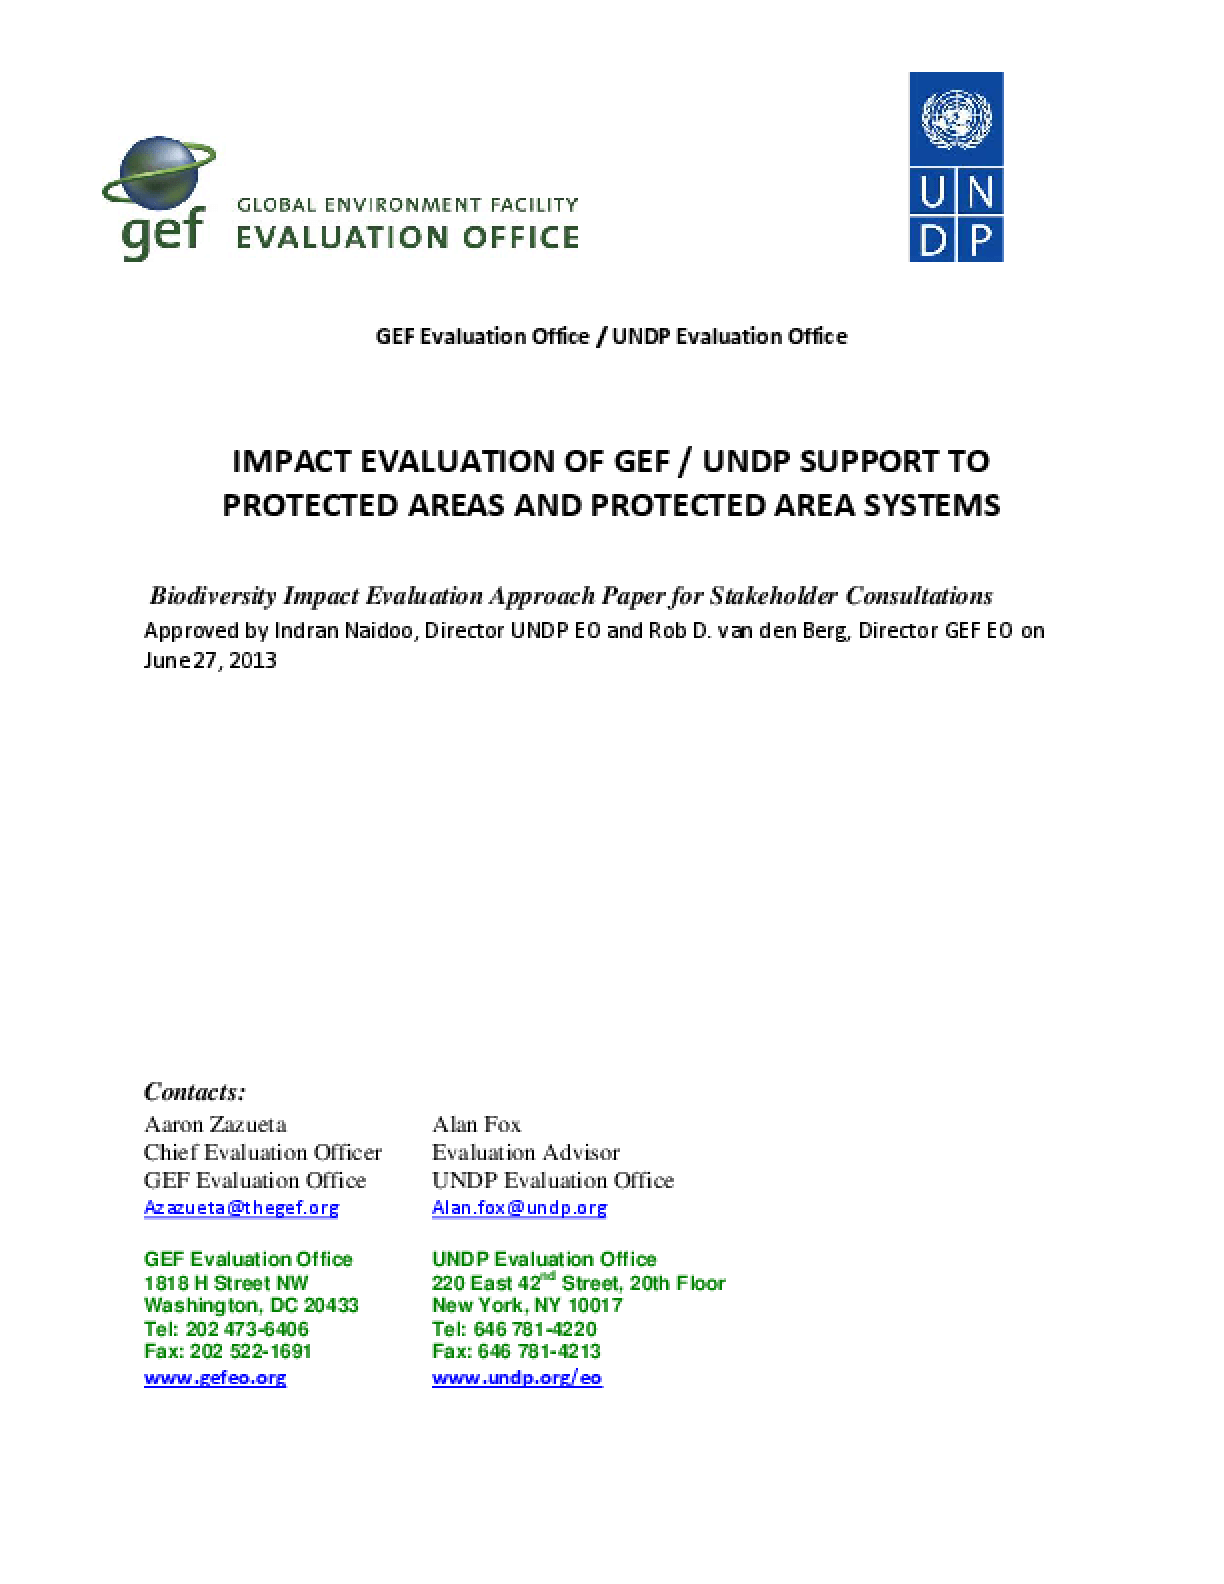 Impact Evaluation of GEF/UNDP Support to Protected Areas and Protected Area Systems